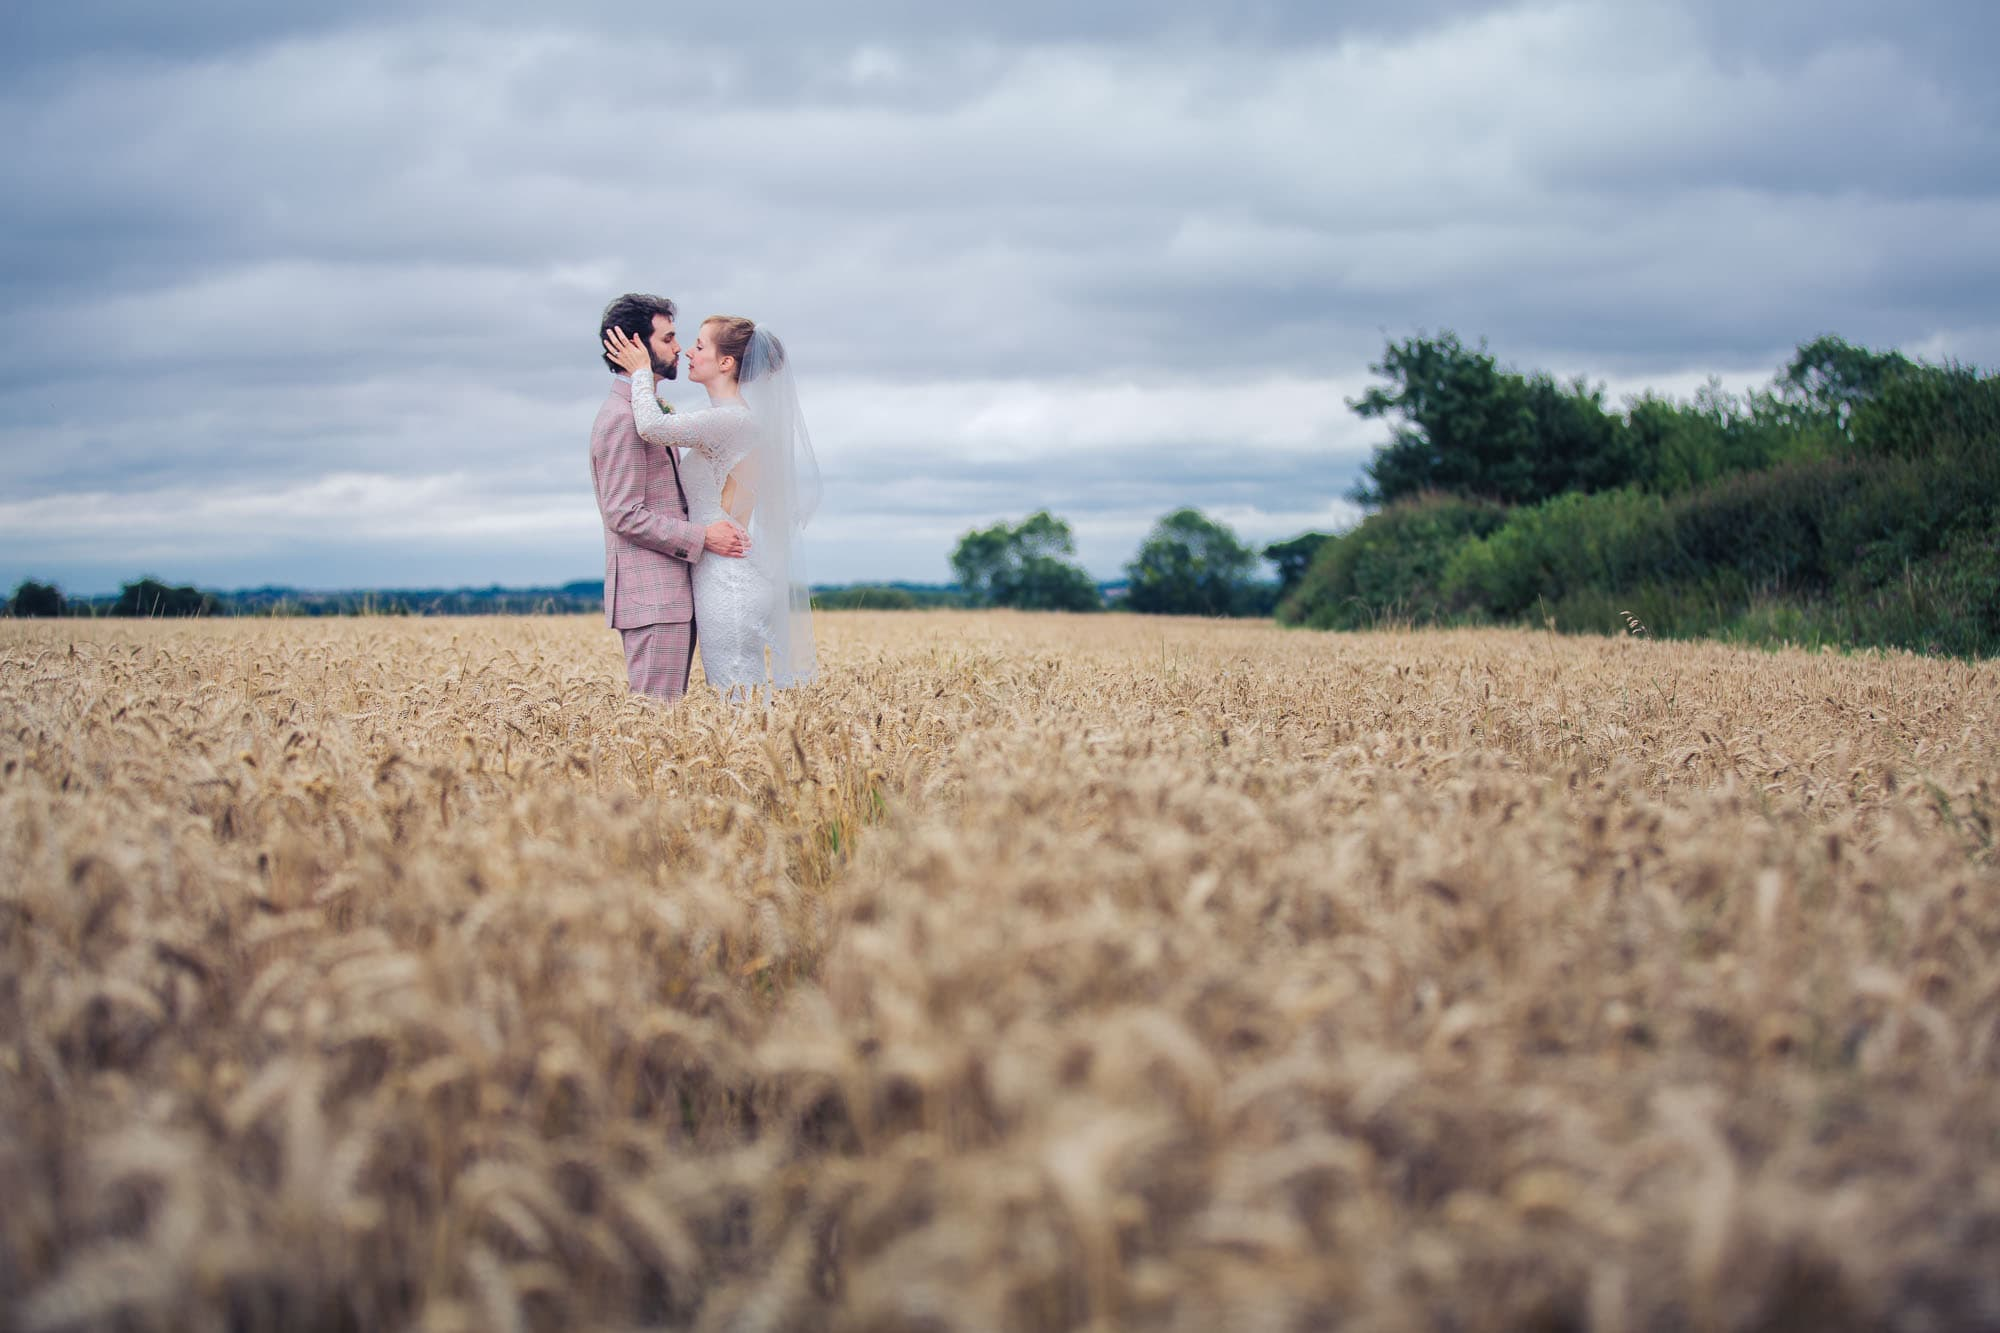 Romantic bride and groom in cornfield wedding photograph